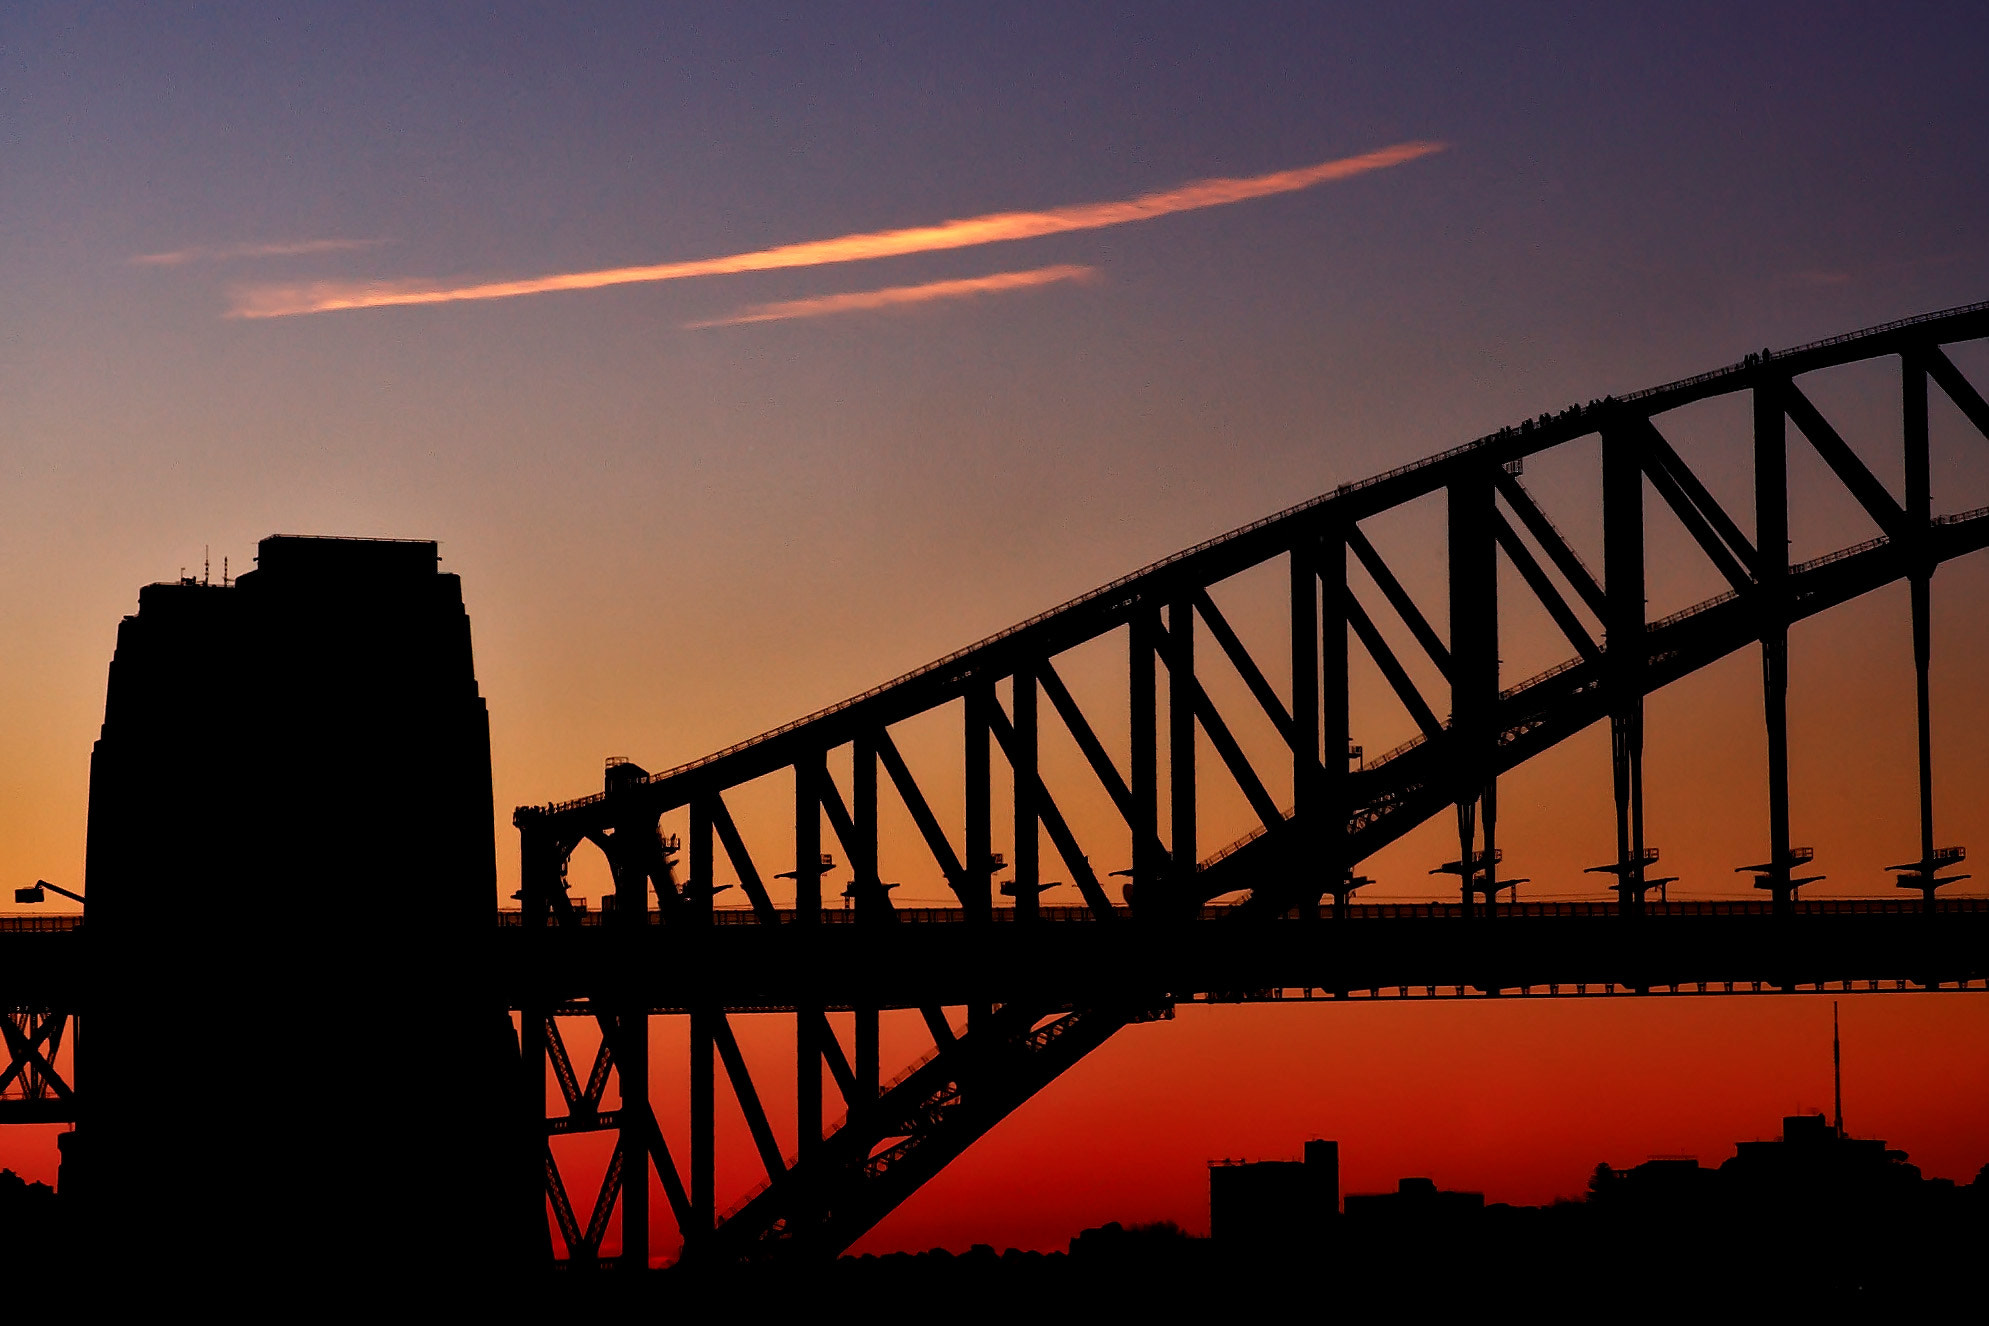 Photograph Dusk at Harbour Bridge by Mike m13/9 on 500px